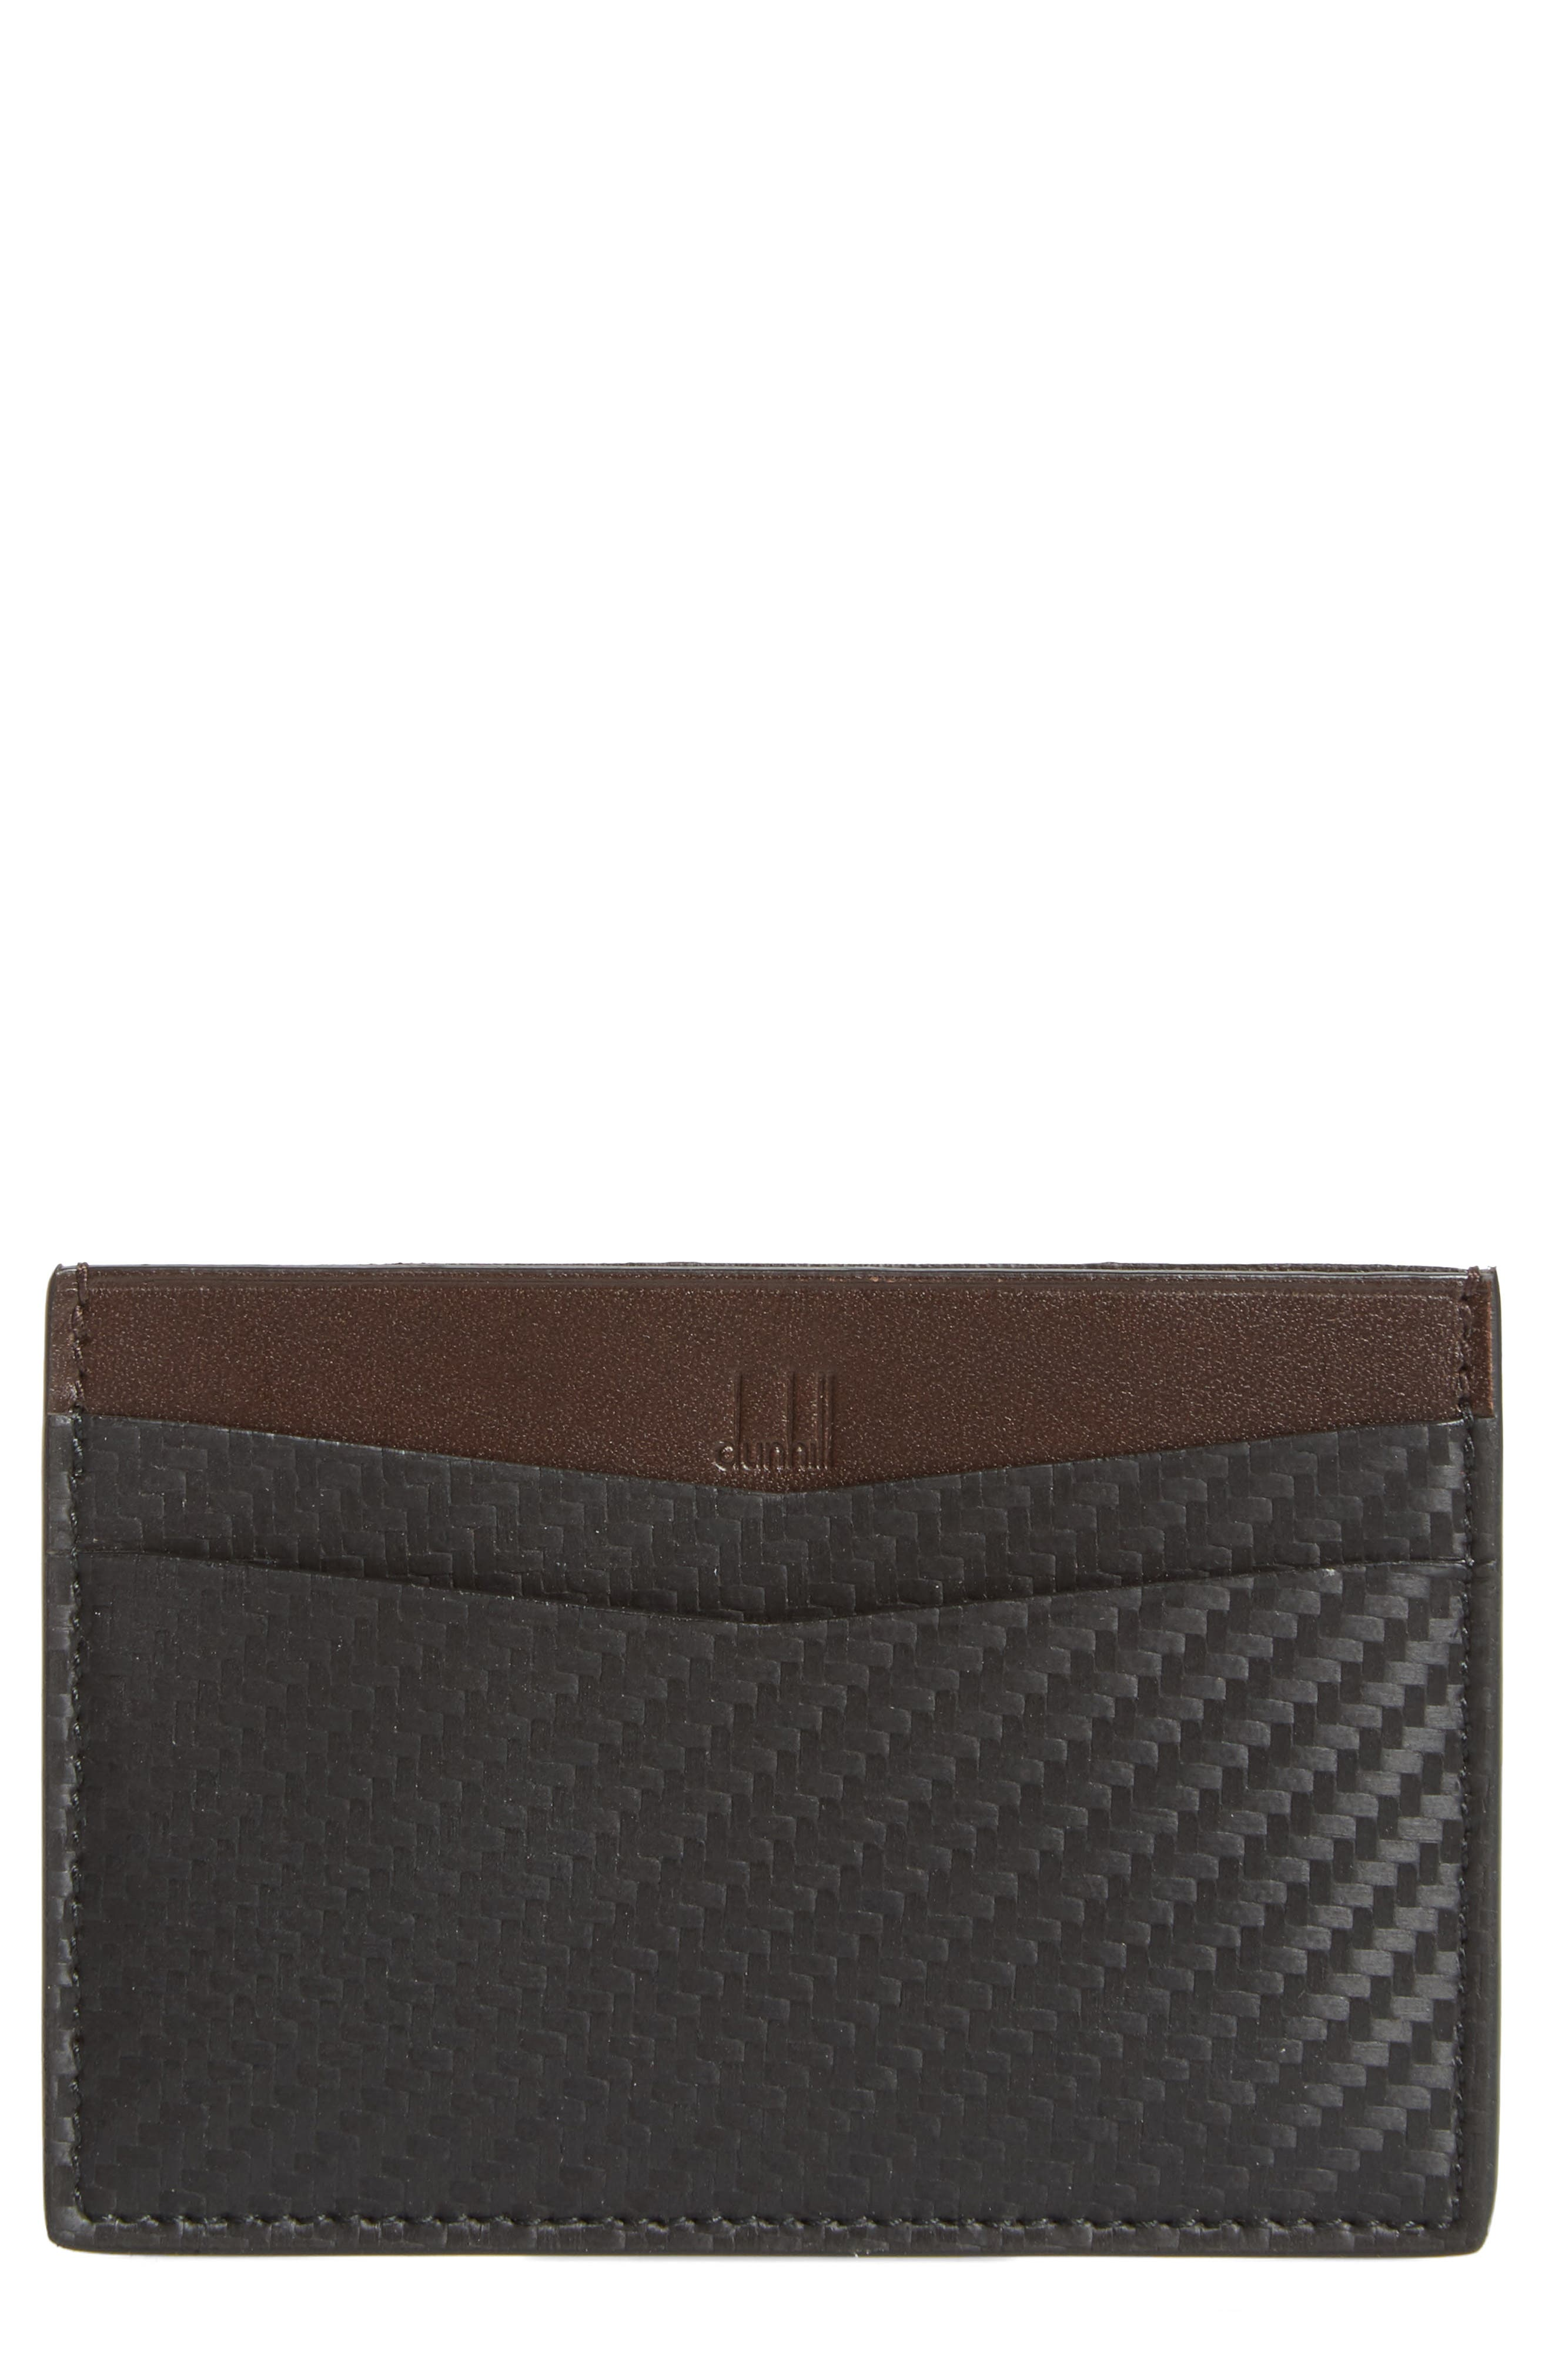 Chassis Leather Card Case,                         Main,                         color, Black